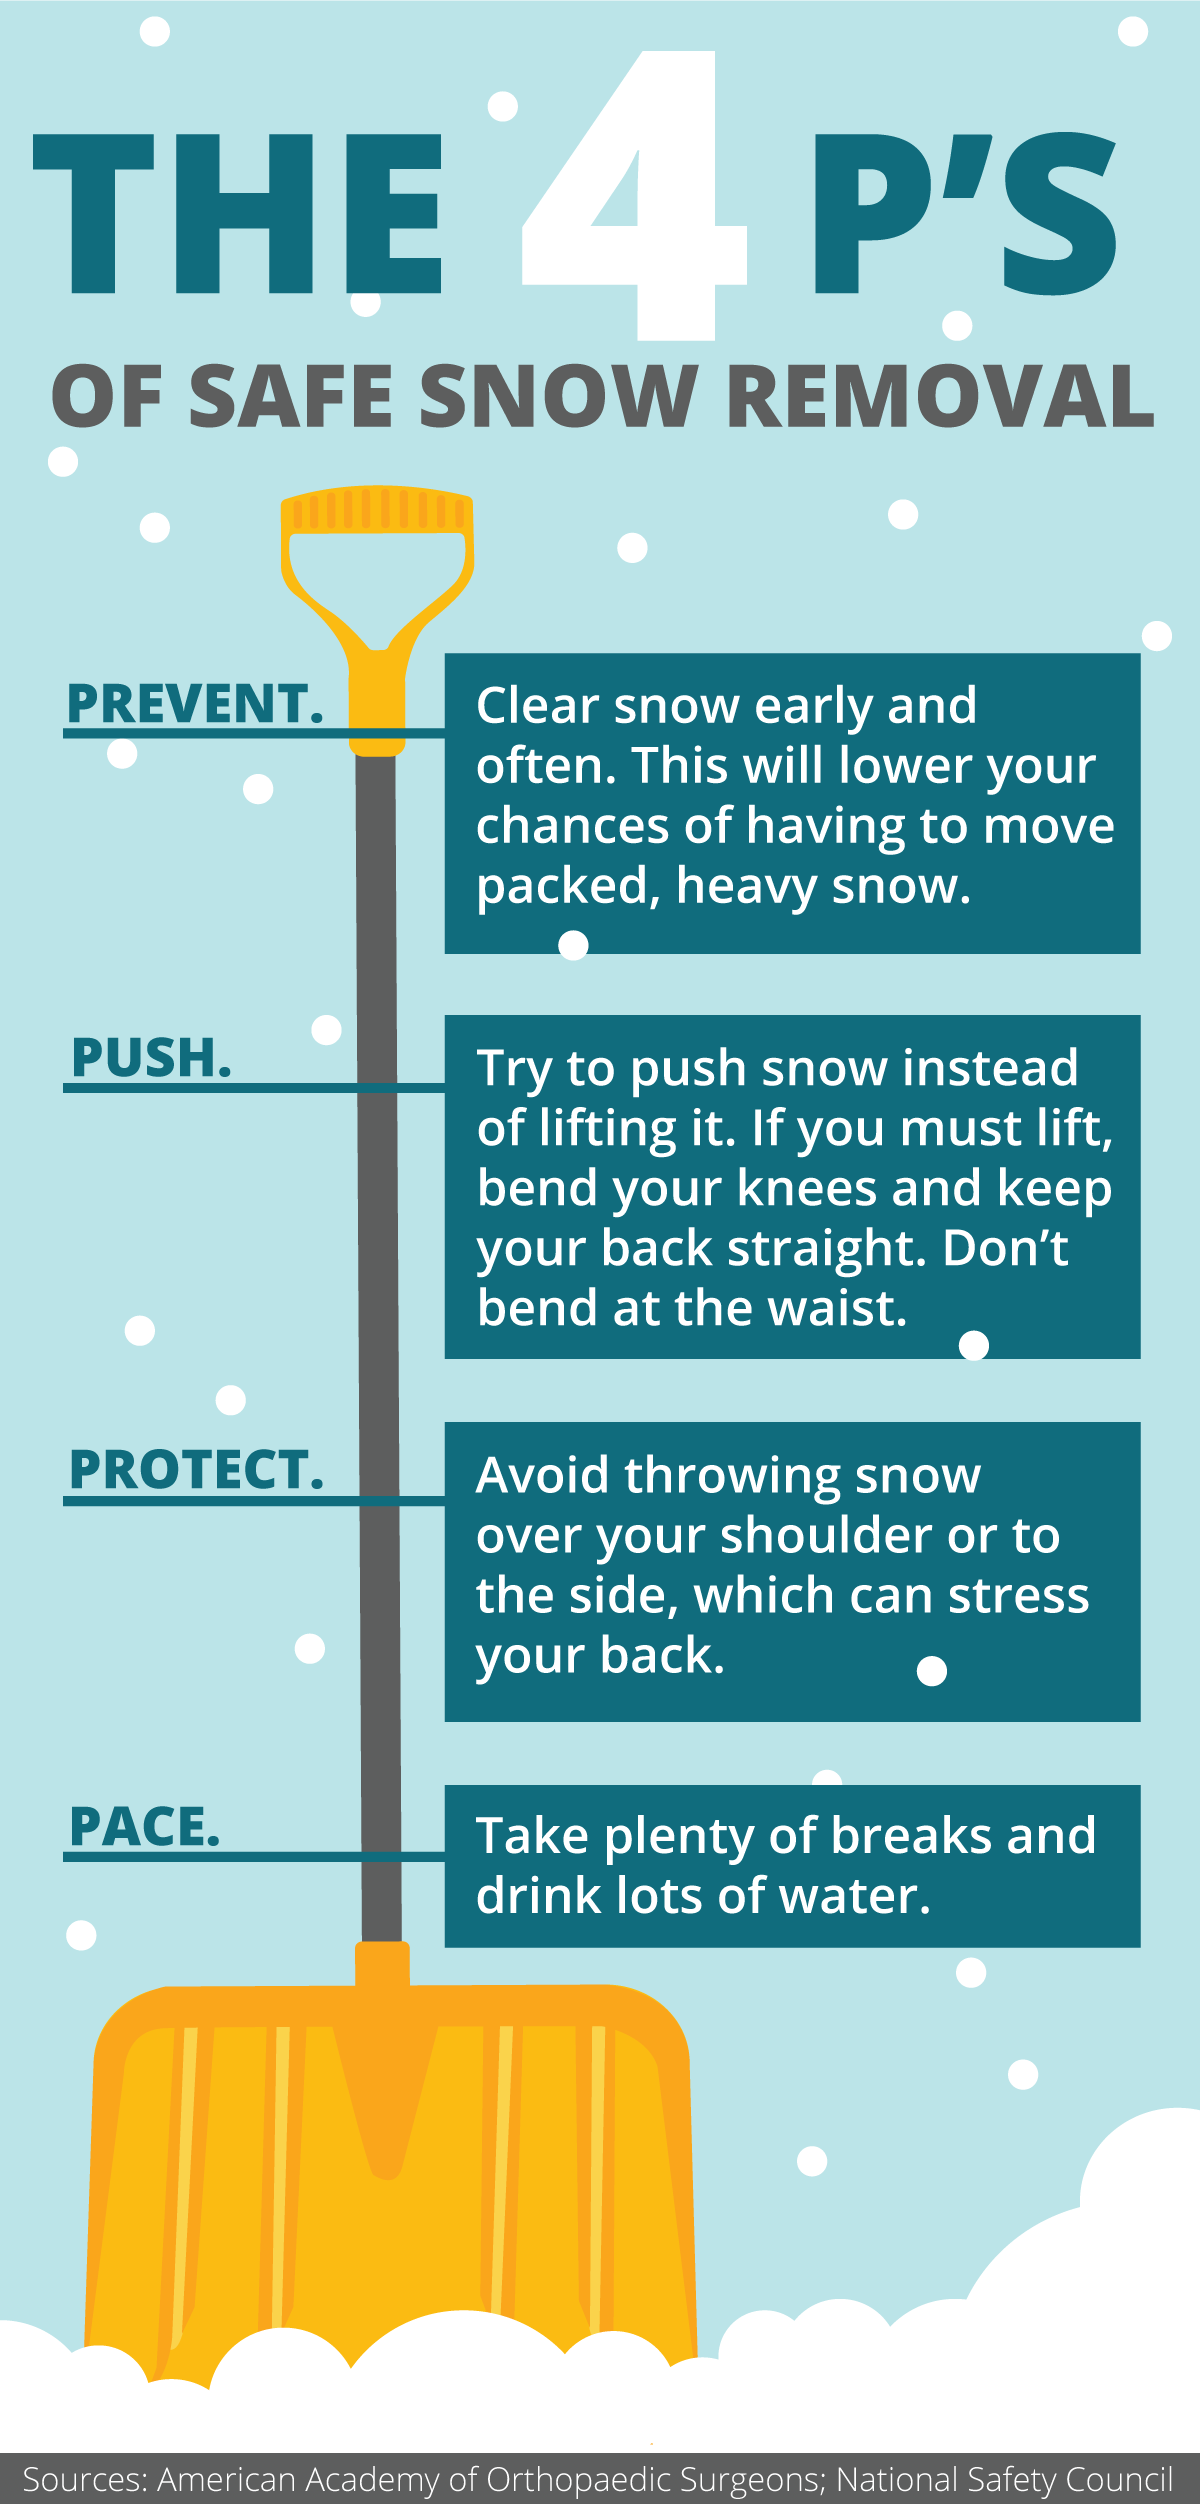 Shoveling Snow Can Be A Good Workout But It Can Quickly Become Too Strenuous If You Don T Follow The Rules Snow Removal Packing To Move Snow Removal Services